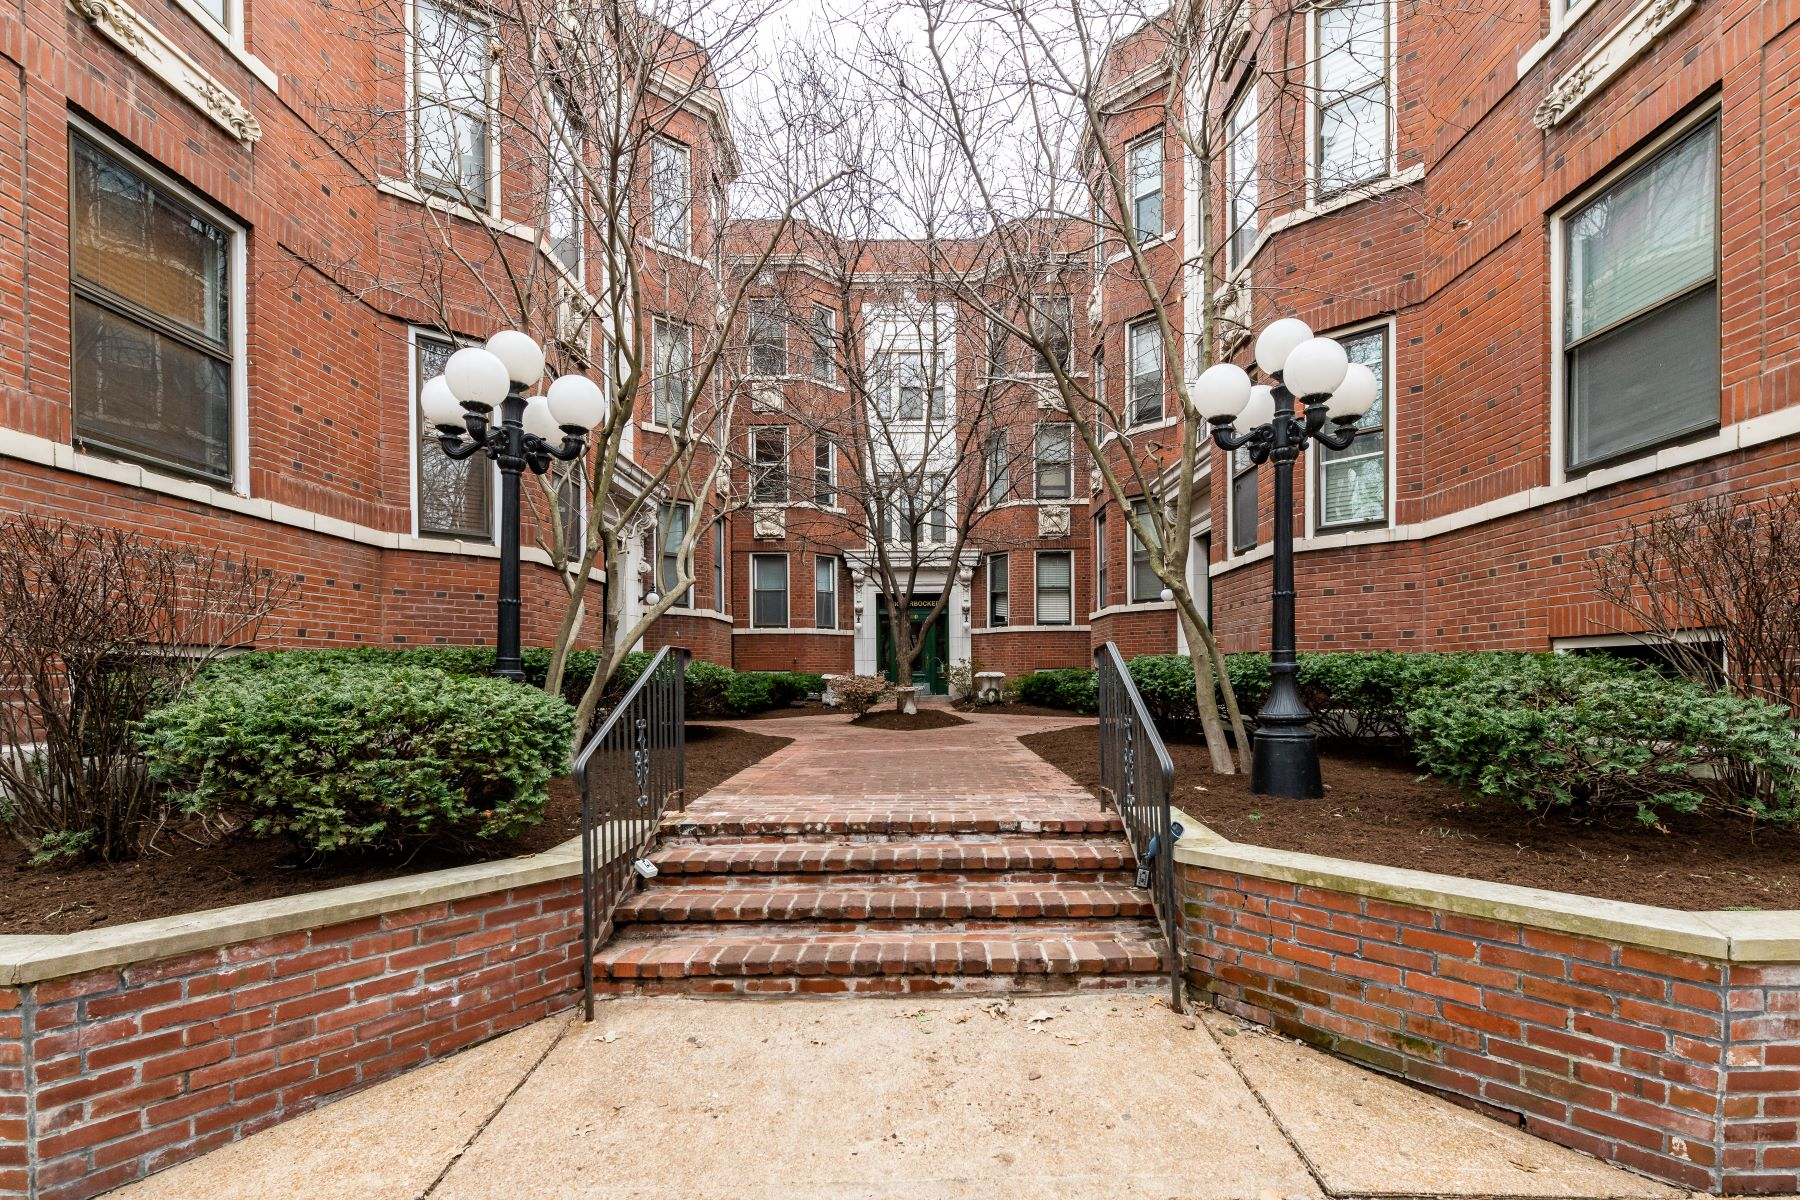 Property for Sale at 380 North Taylor Avenue, St. Louis, MO 63108 380 North Taylor Avenue #3S St. Louis, Missouri 63108 United States